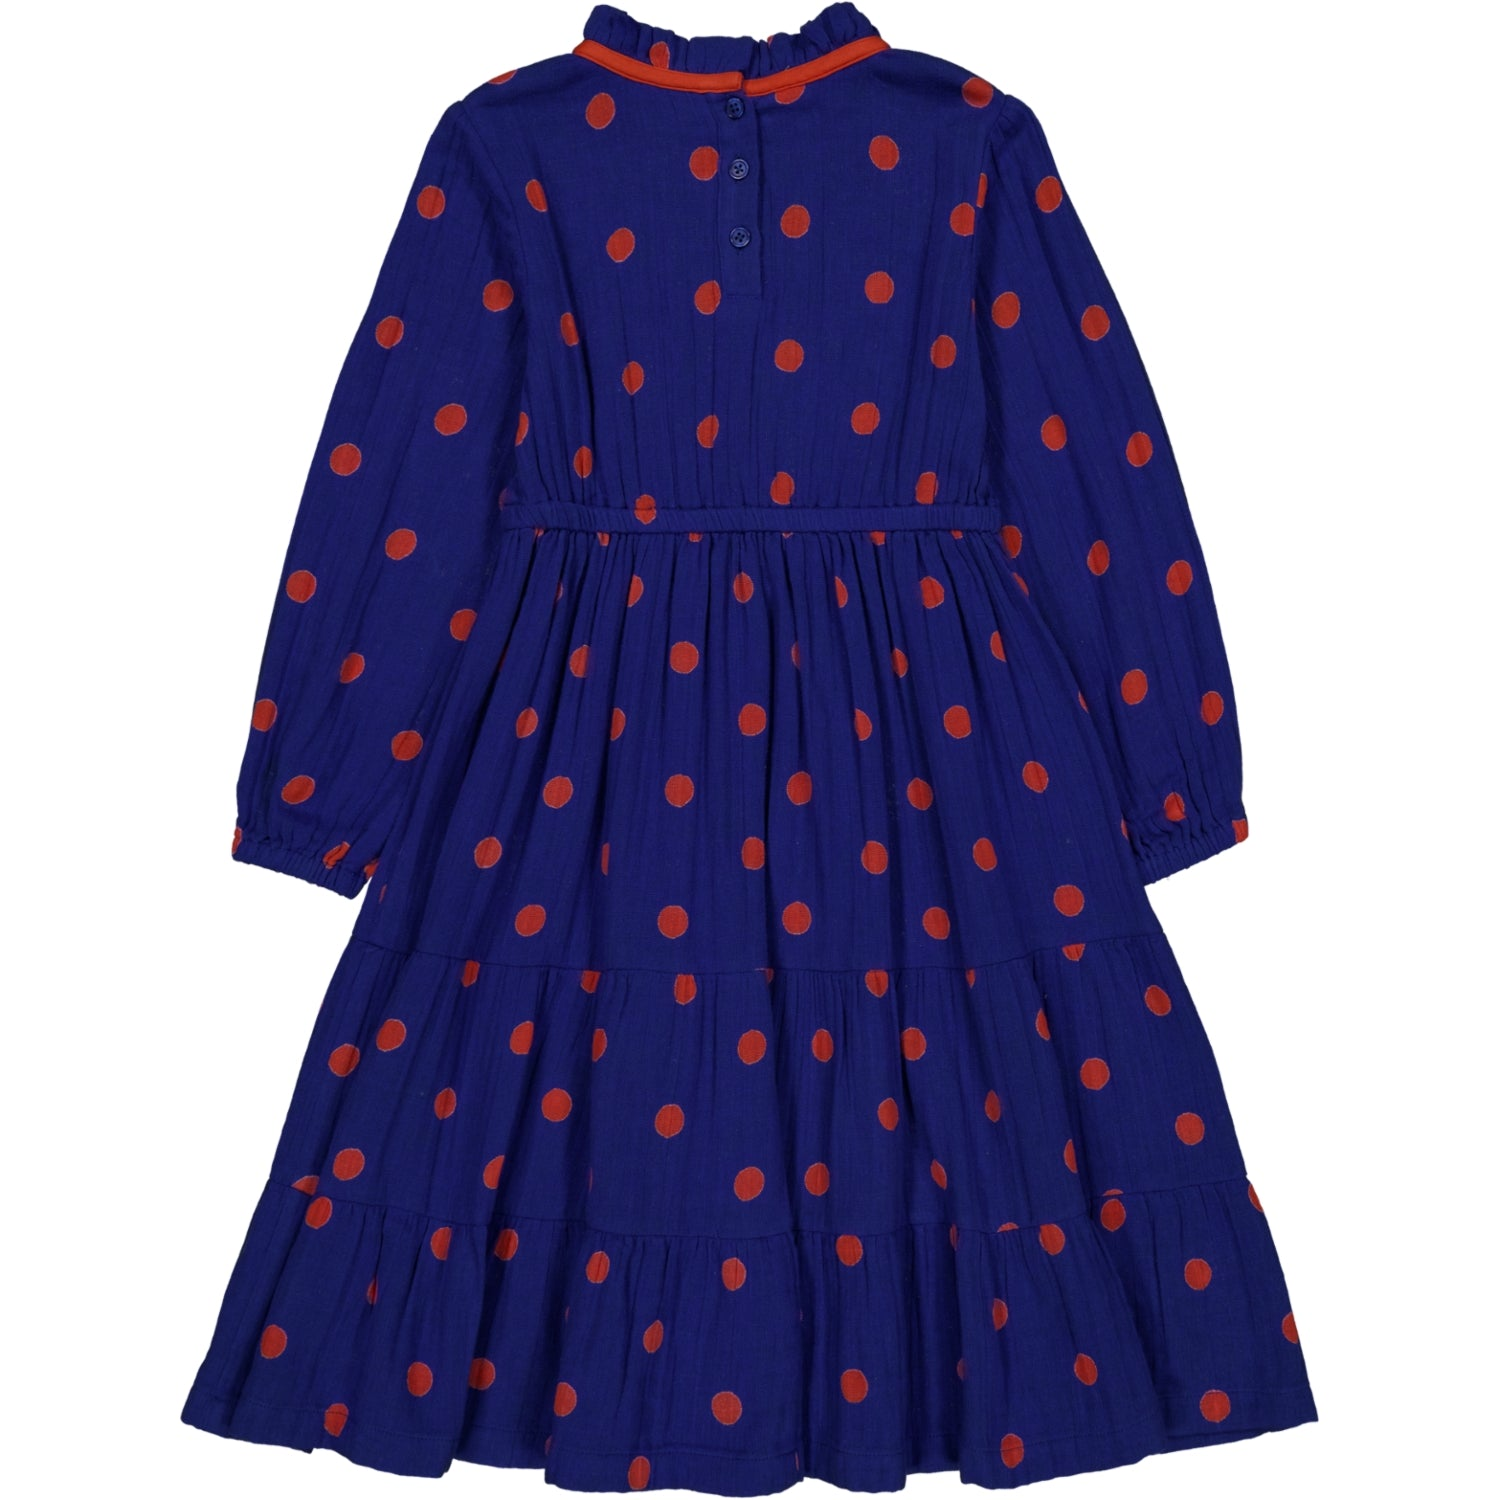 hello simone mirabelle dress